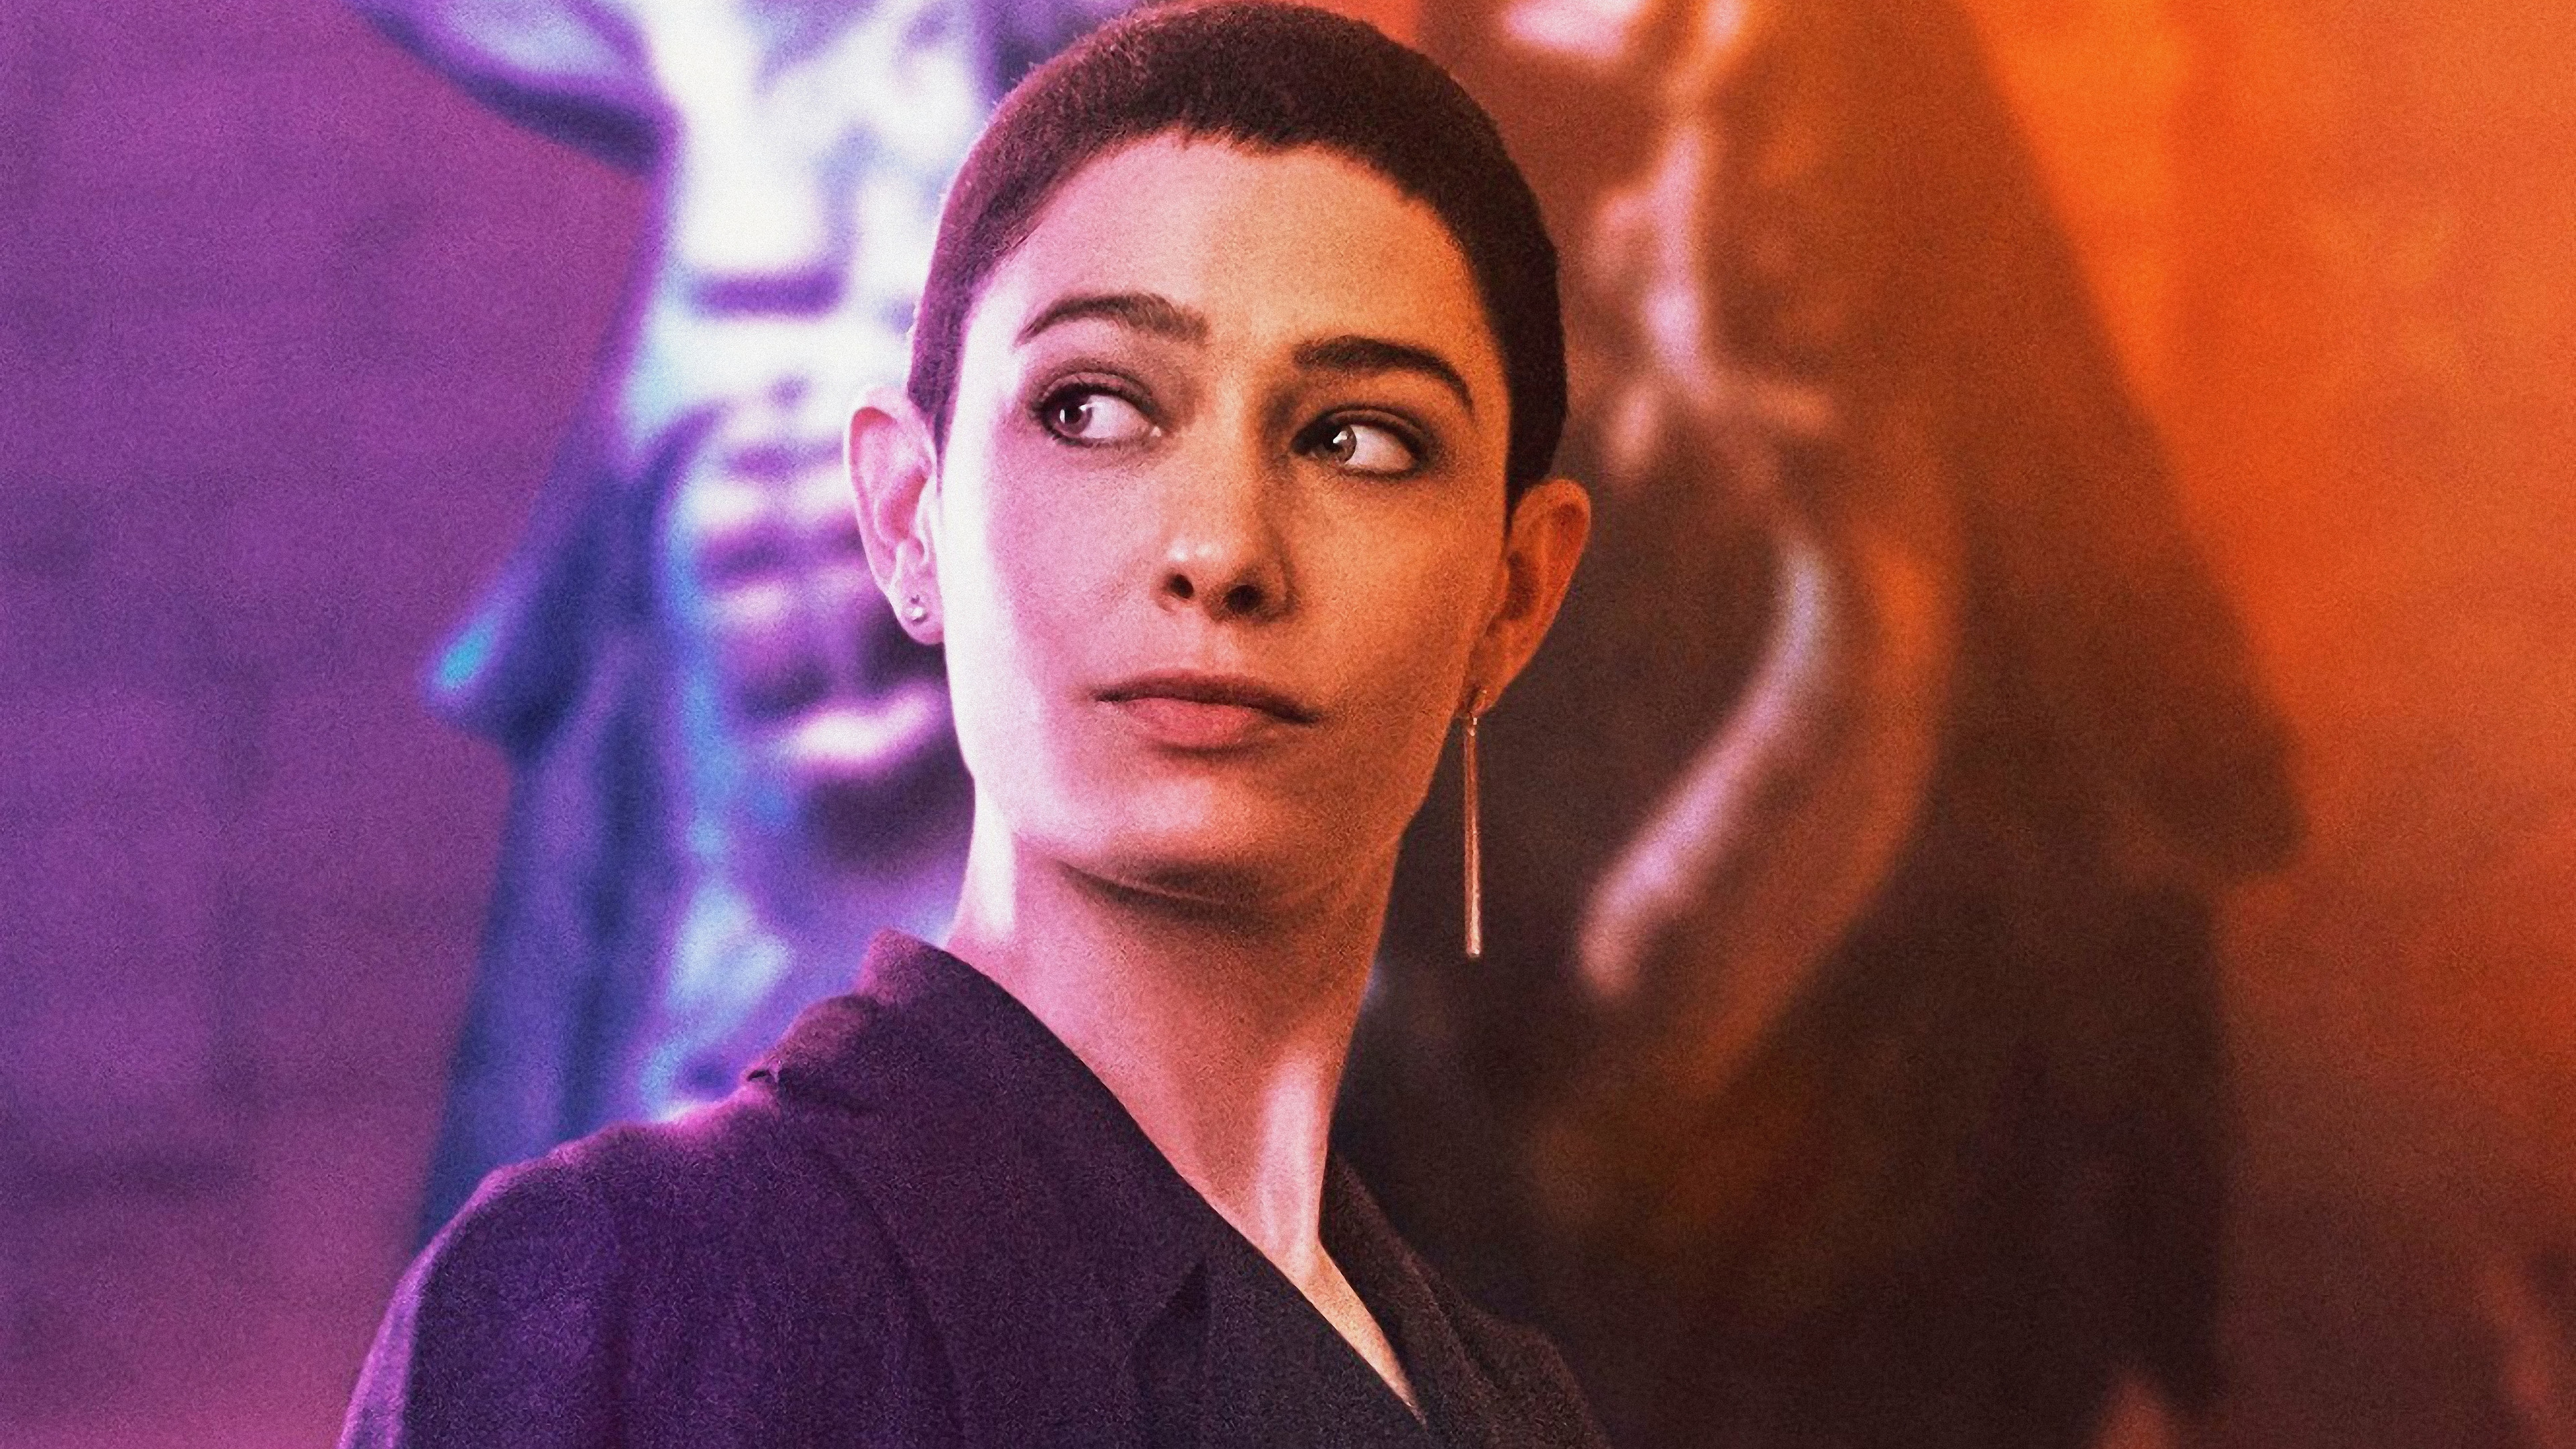 asia-kate-dillon-in-john-wick-chapter-3-parabellum-2019-8k-ml.jpg